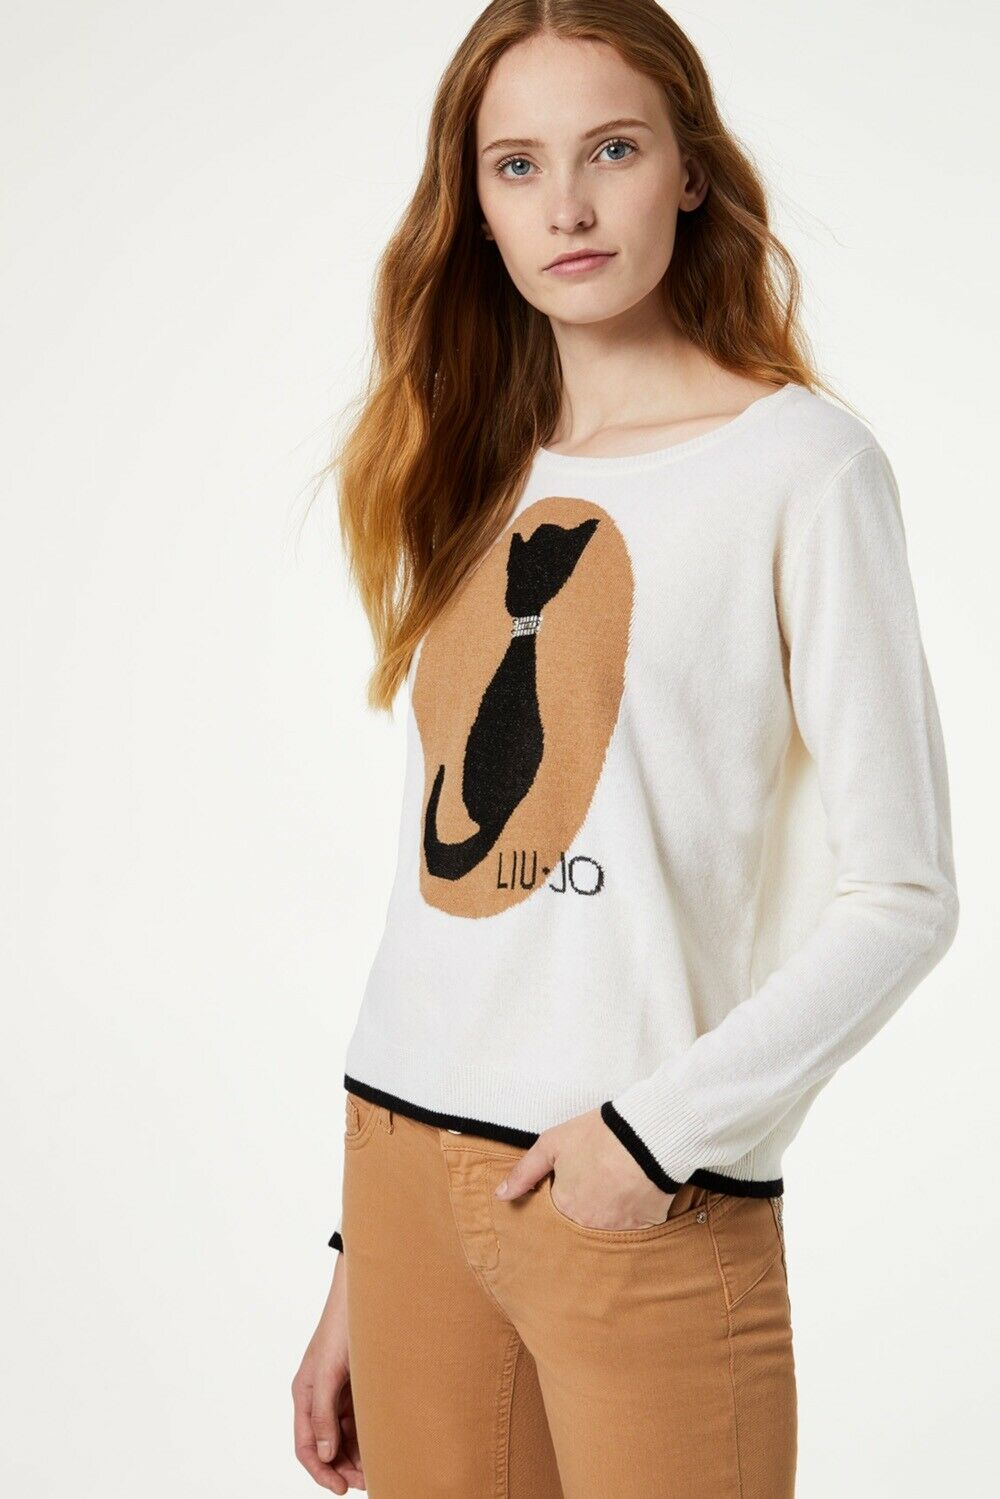 Wool sweater around neck LIUJO GOLD |  | C69315B3538